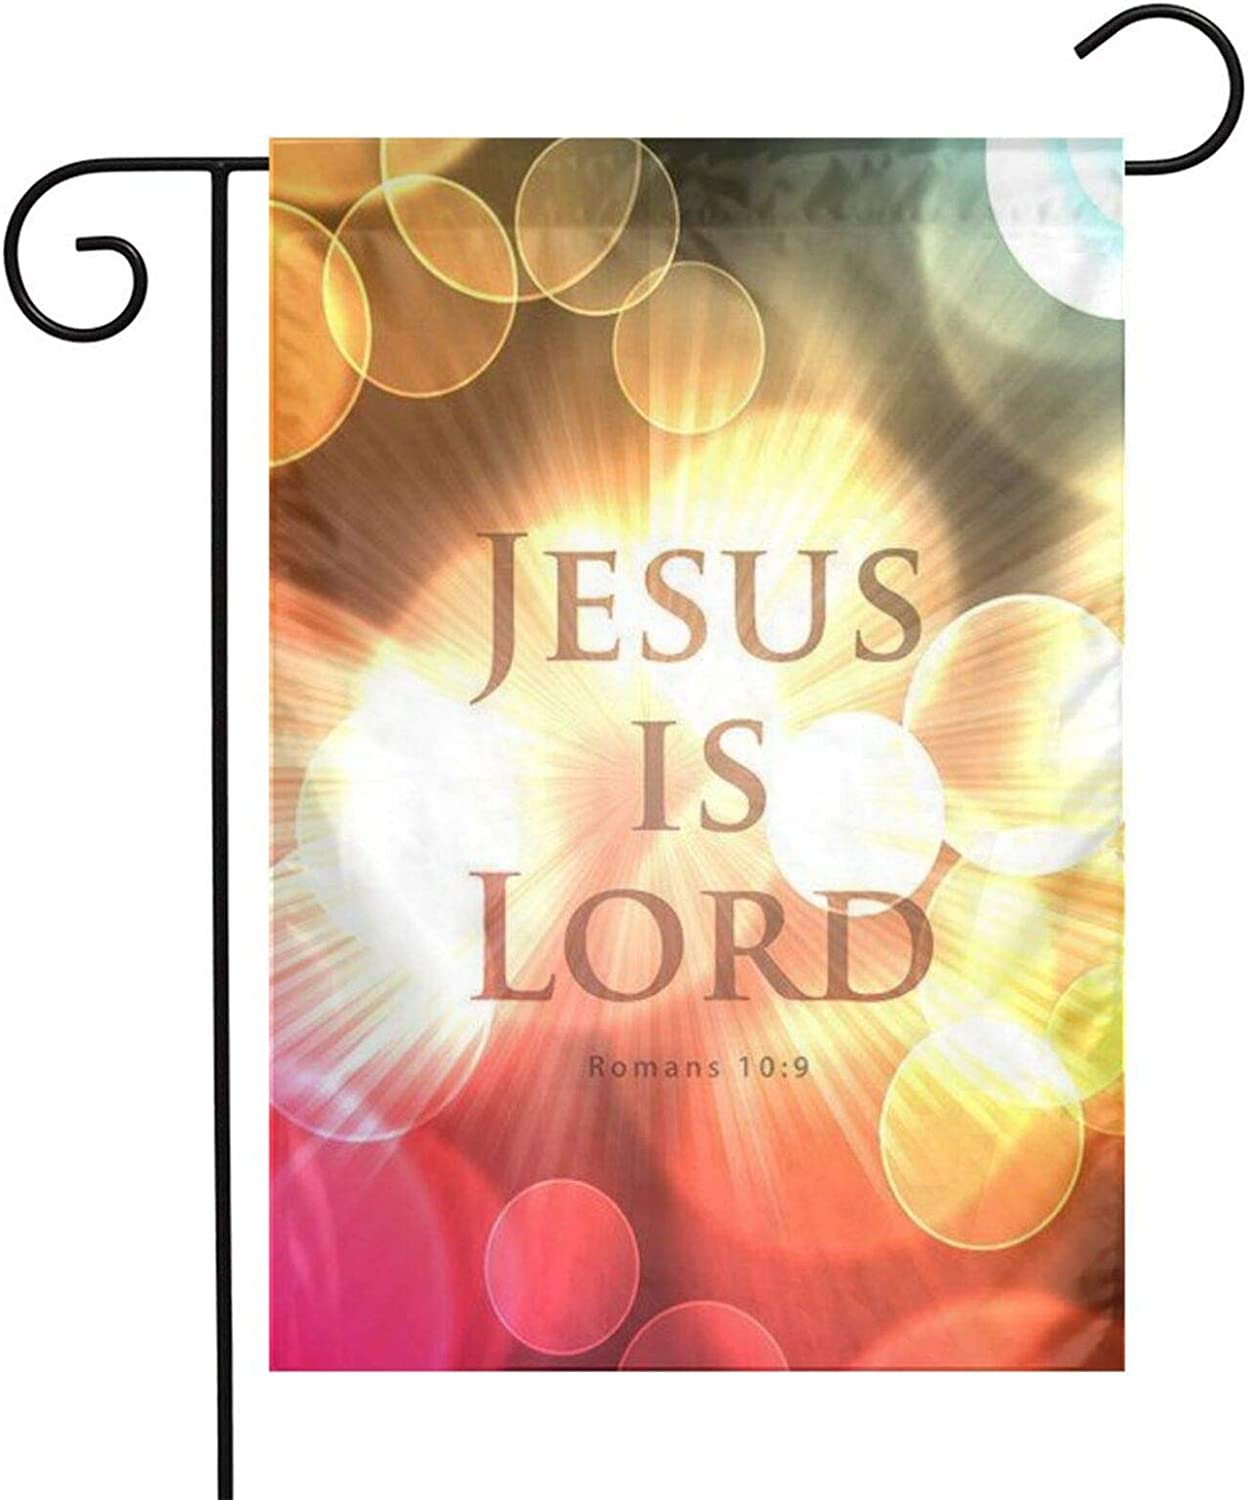 Jesus is Lord Garden Flag for Outside 12x18 Inch Double Sides Flag Outdoor Yard Flag Garden Decor